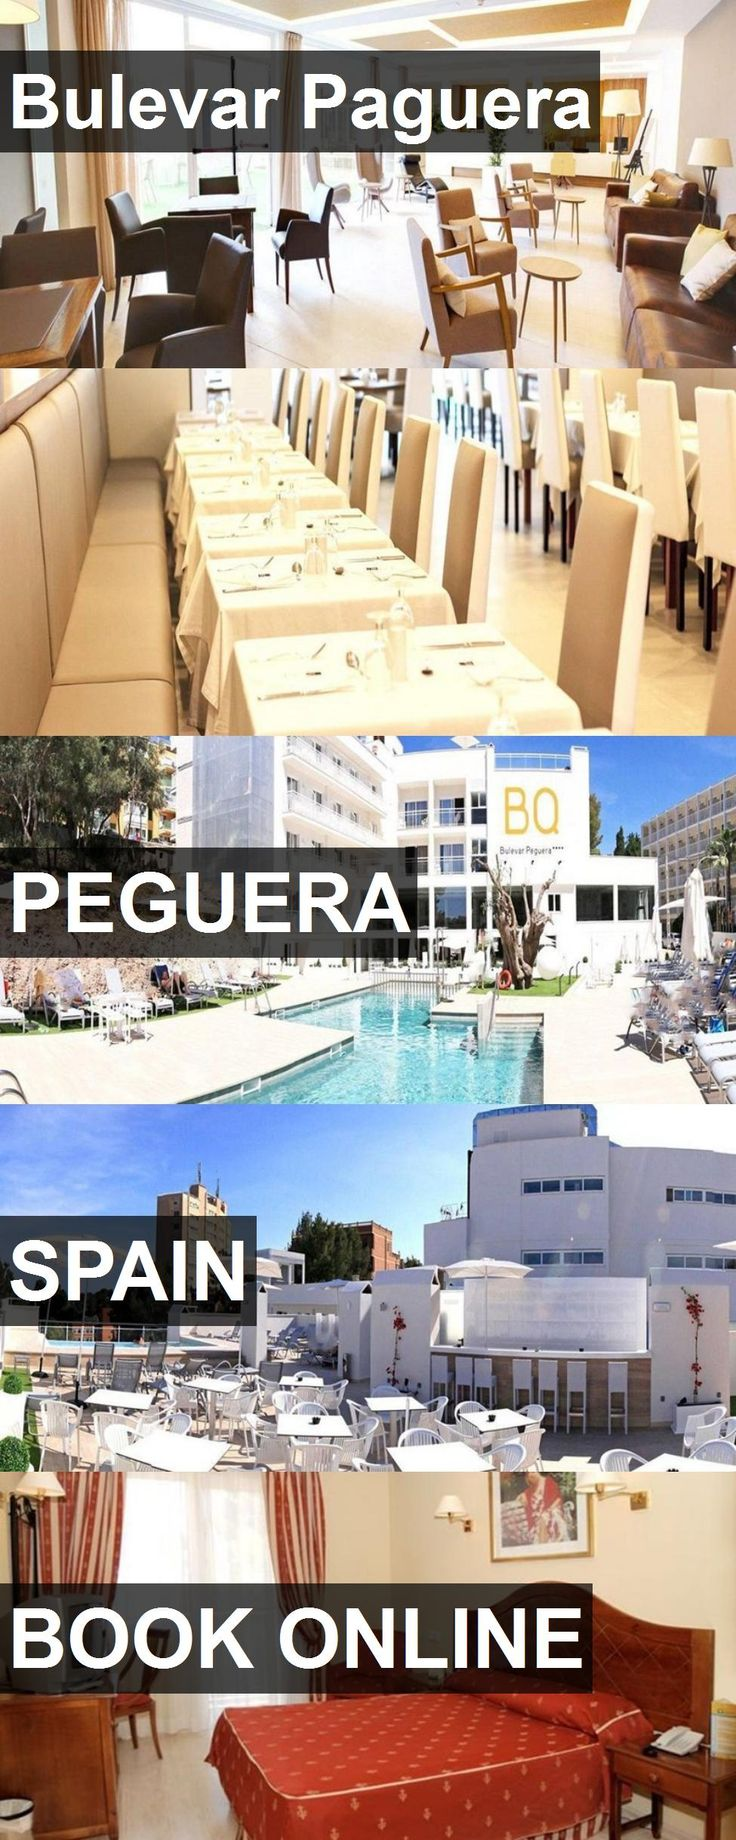 Hotel Bulevar Paguera in Peguera, Spain. For more information, photos, reviews and best prices please follow the link. #Spain #Peguera #travel #vacation #hotel